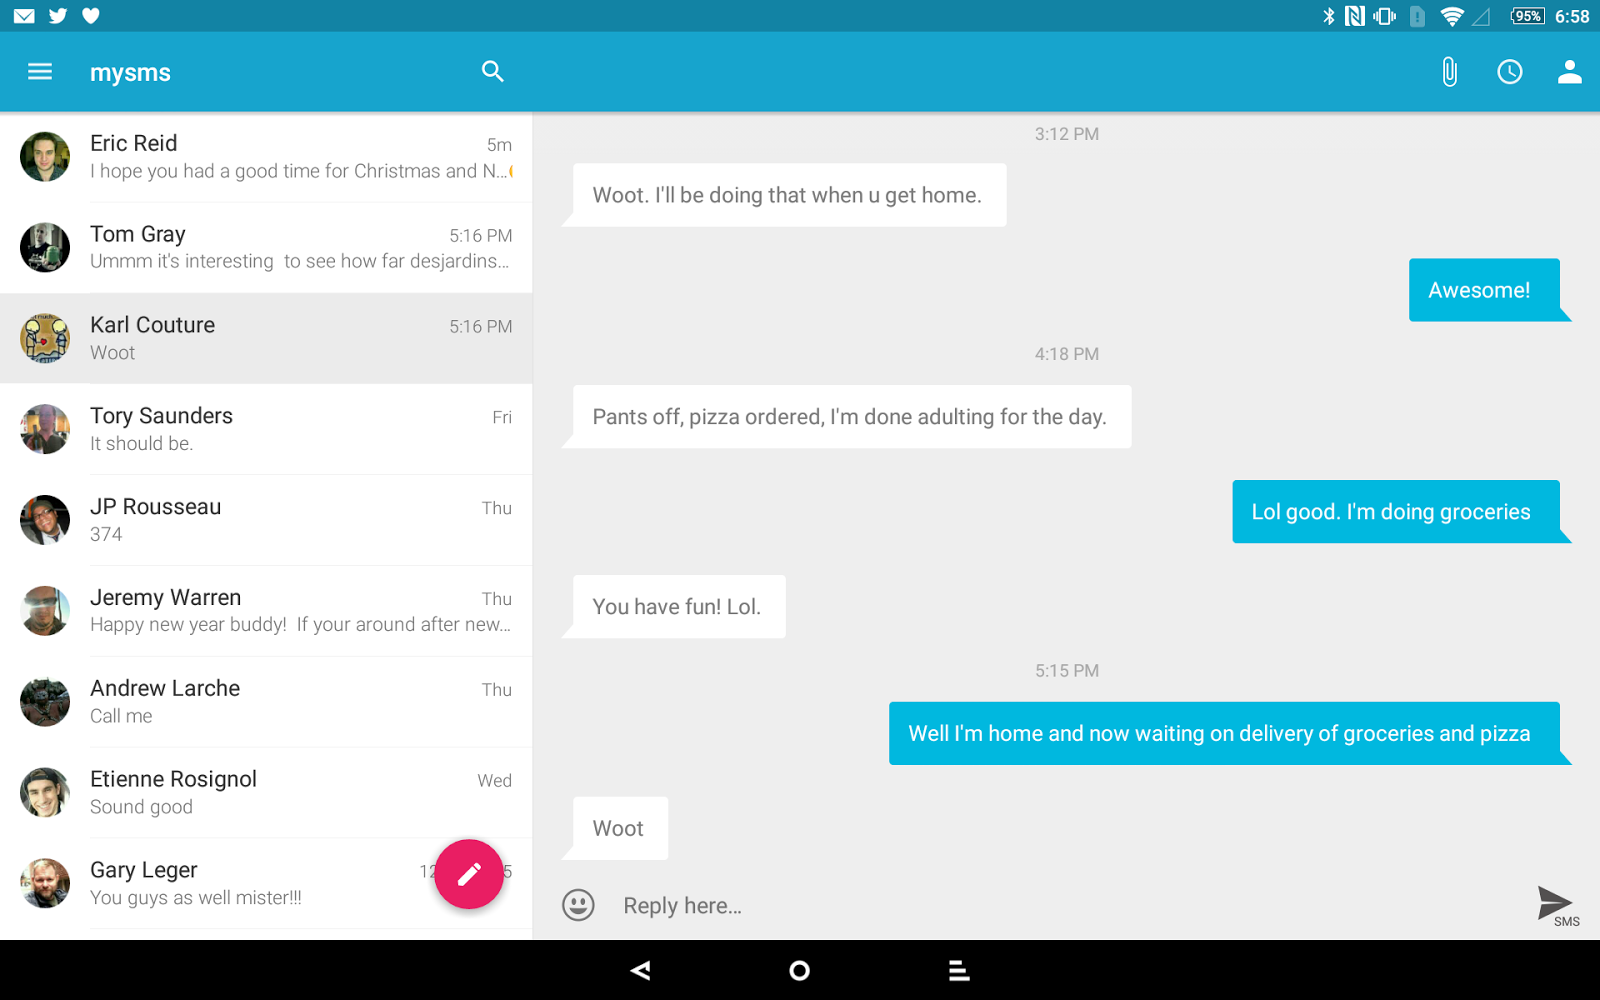 UPDATE] mySMS+Pushline is taking over for what Pushbullet